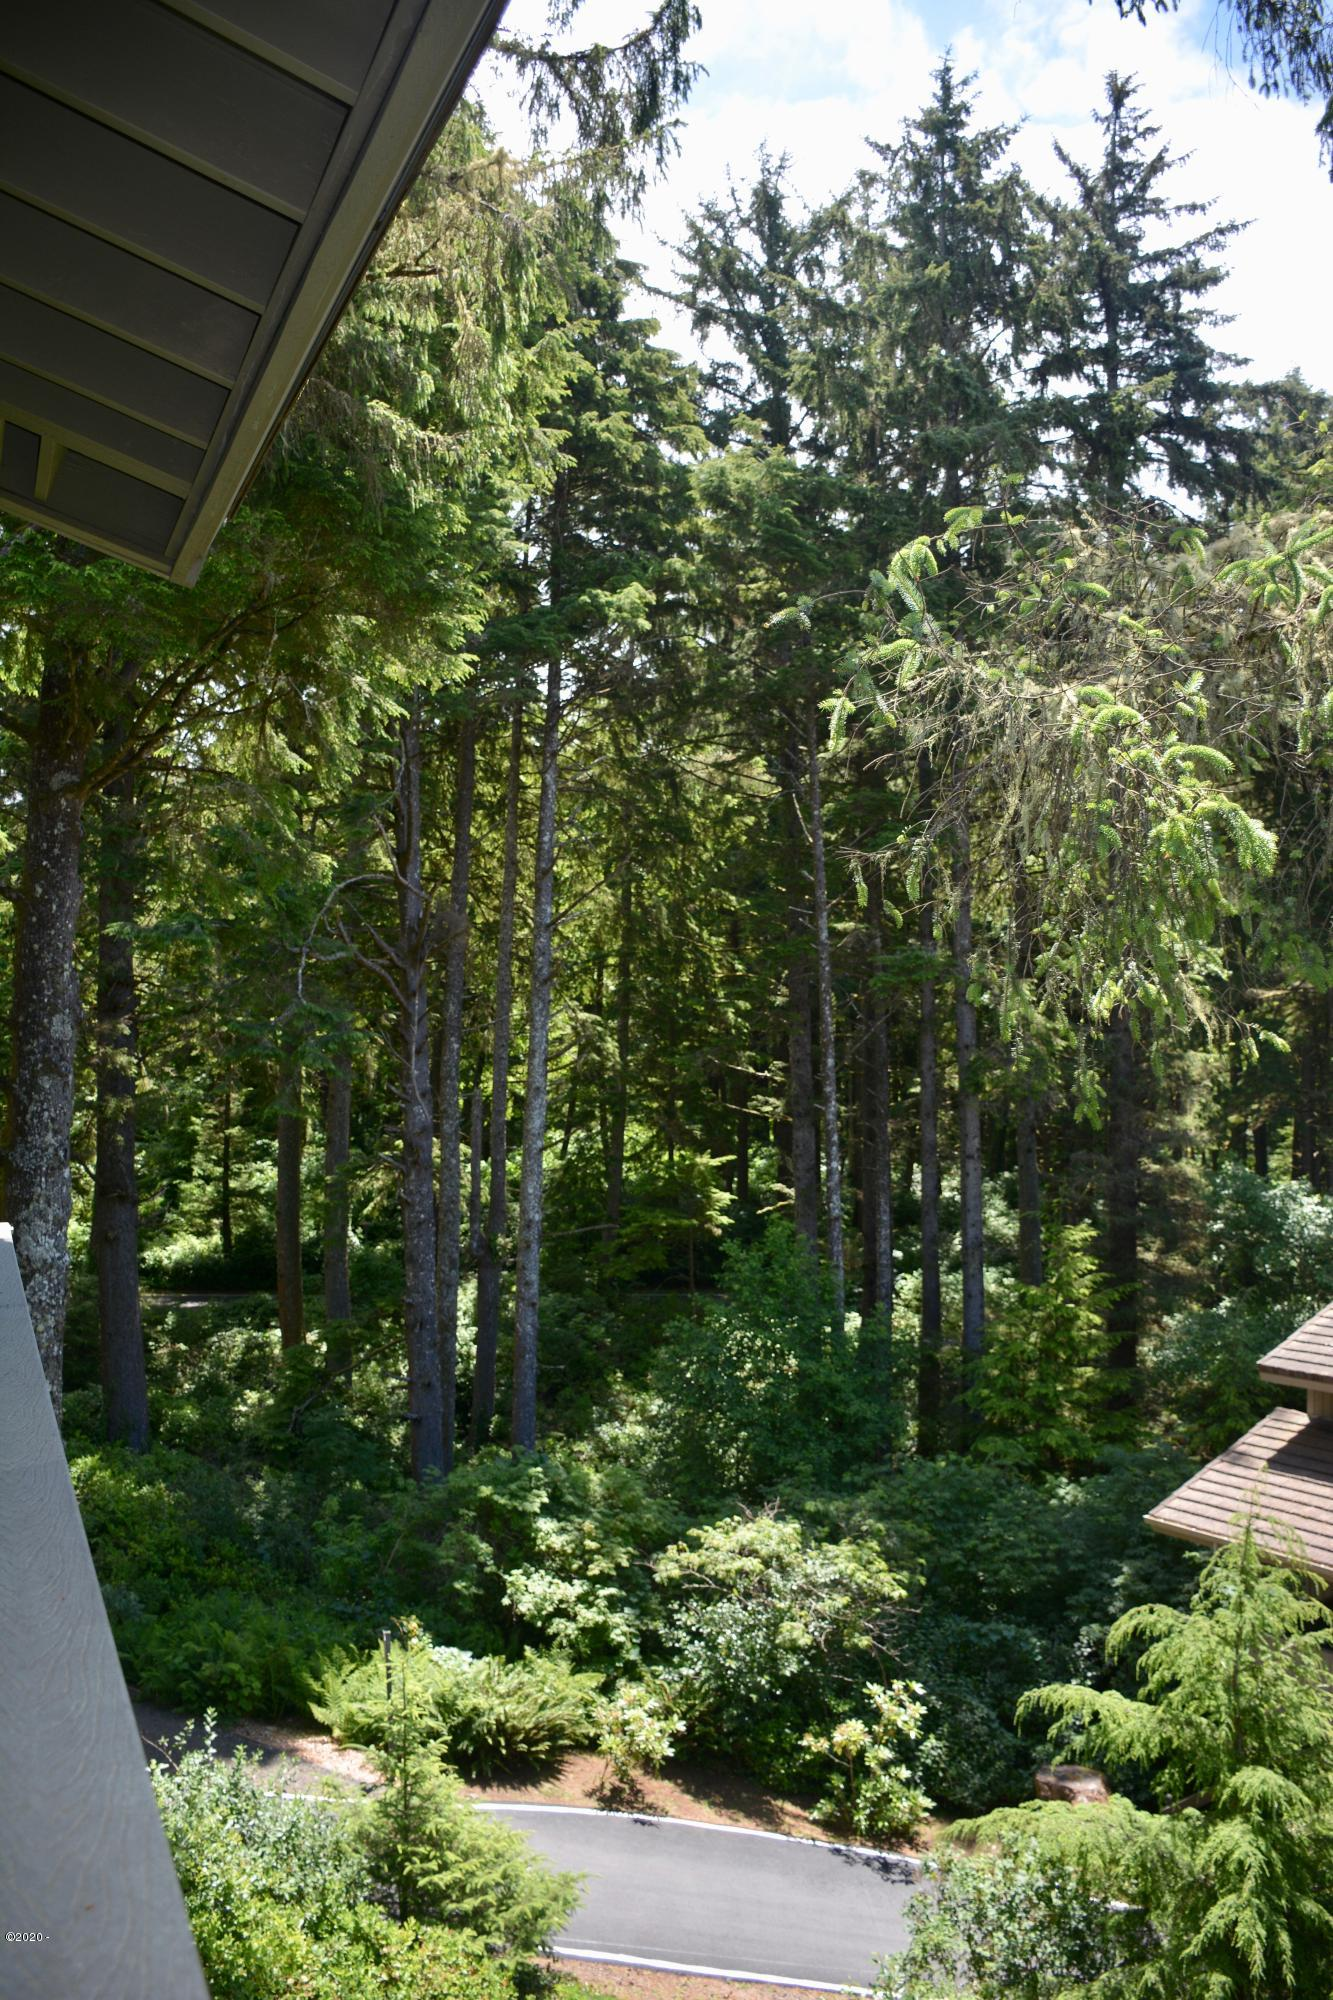 301 Otter Crest Dr, #304-305, 1/4th Share, Otter Rock, OR 97369